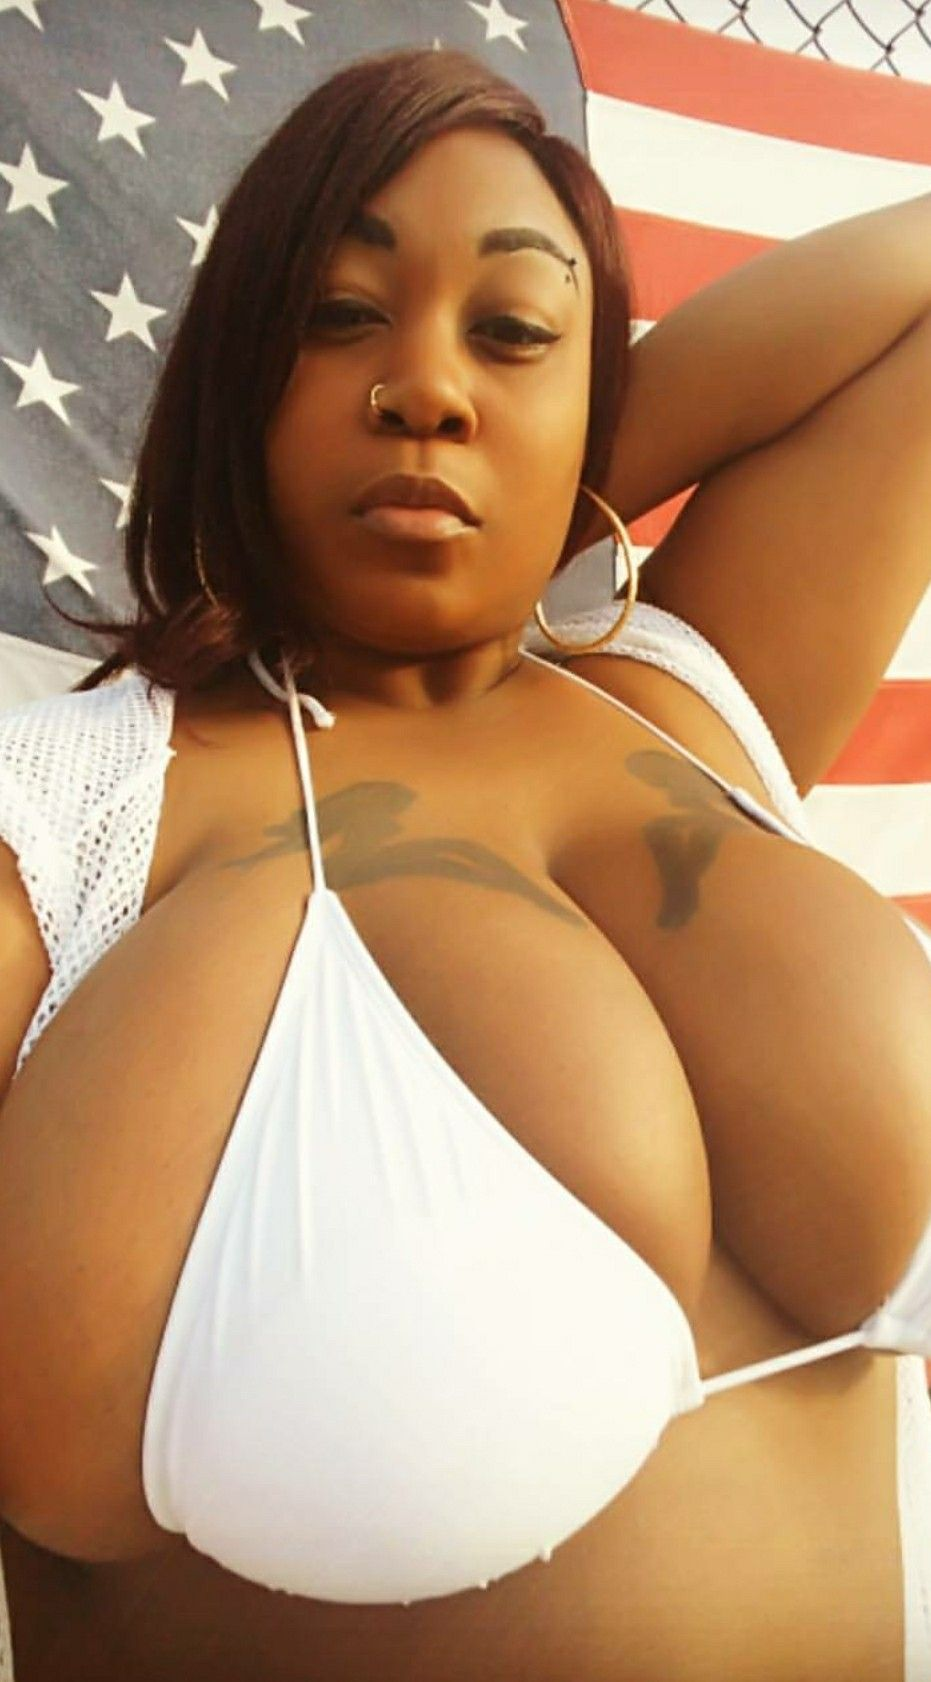 Show me women with big tits